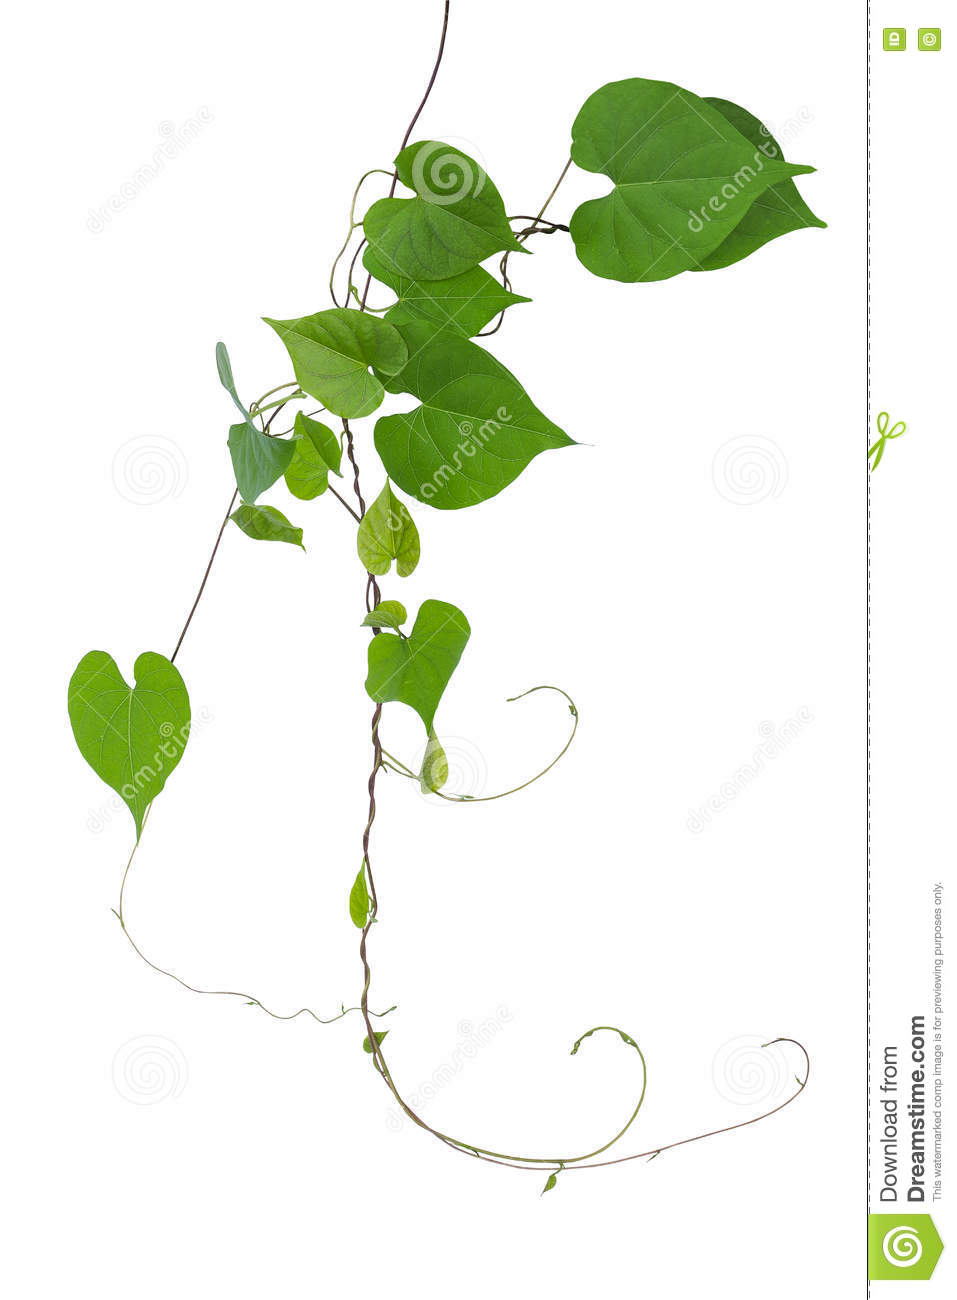 Heart Shaped Green Leaves Wild Vine With Branches And Tendrils I